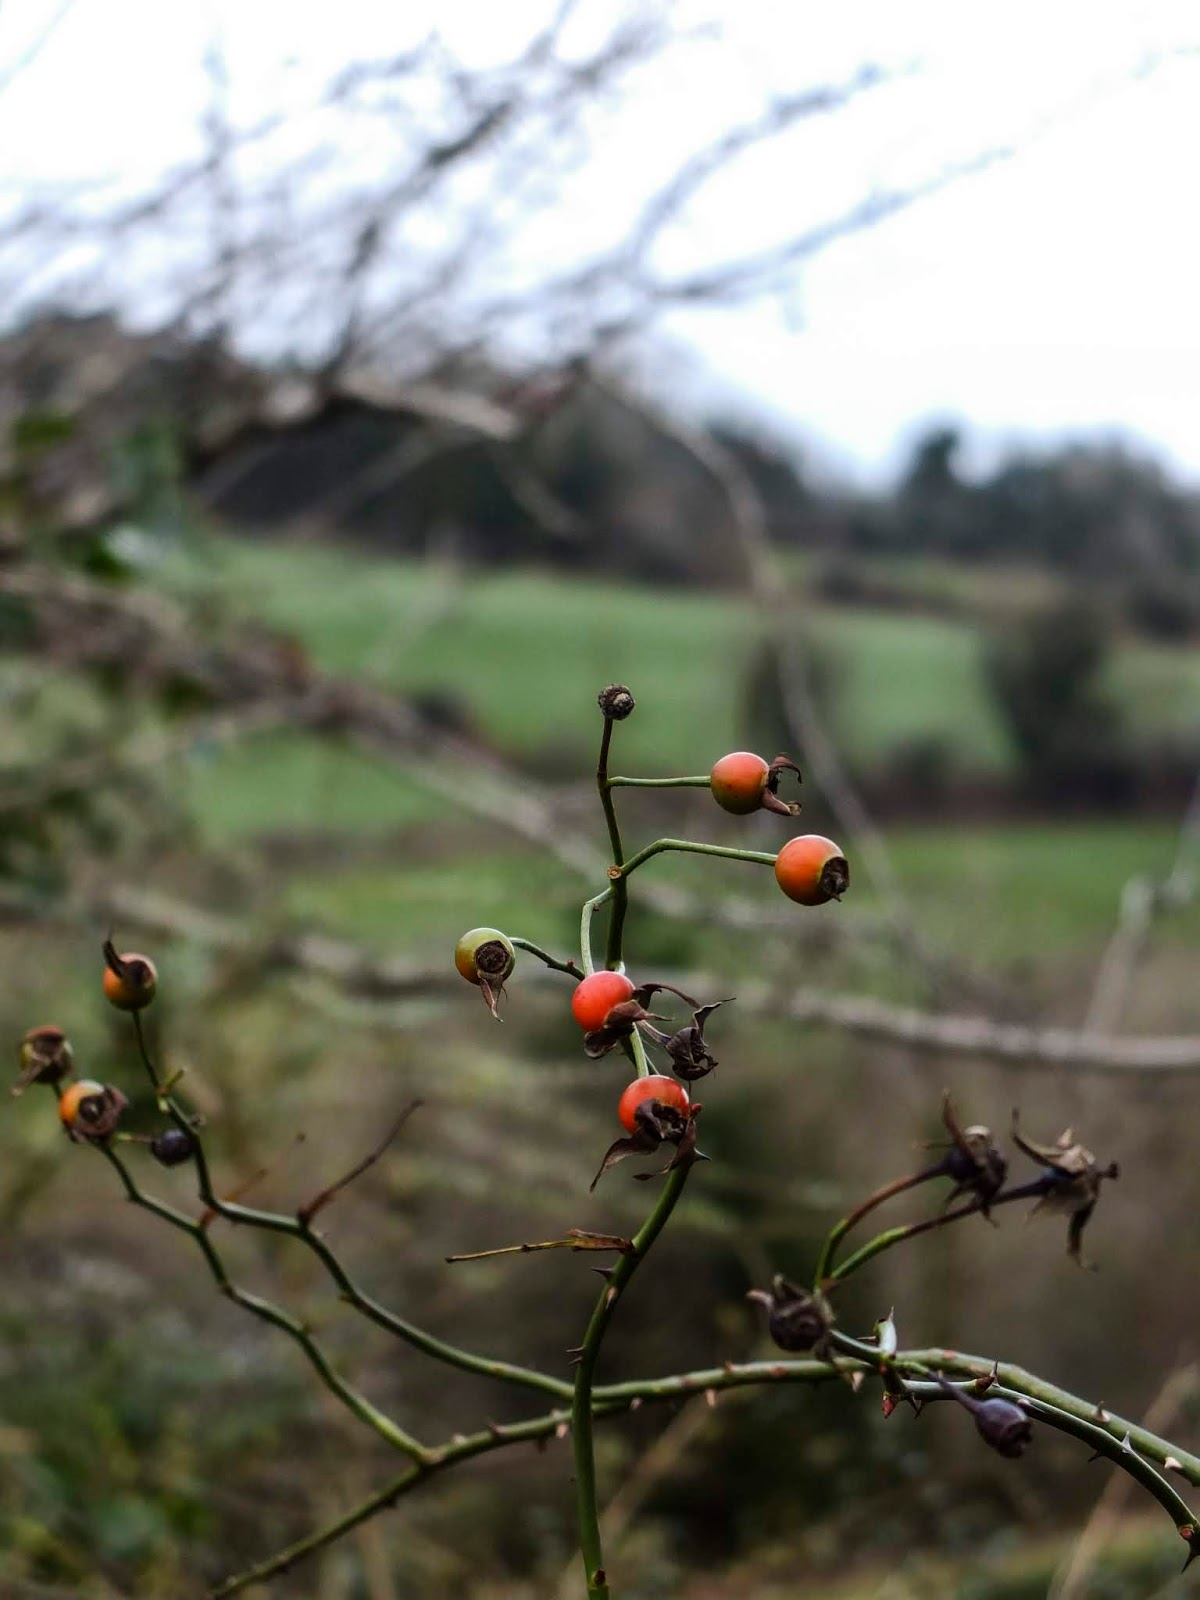 Close up of red rose hips with a hillside in the background.